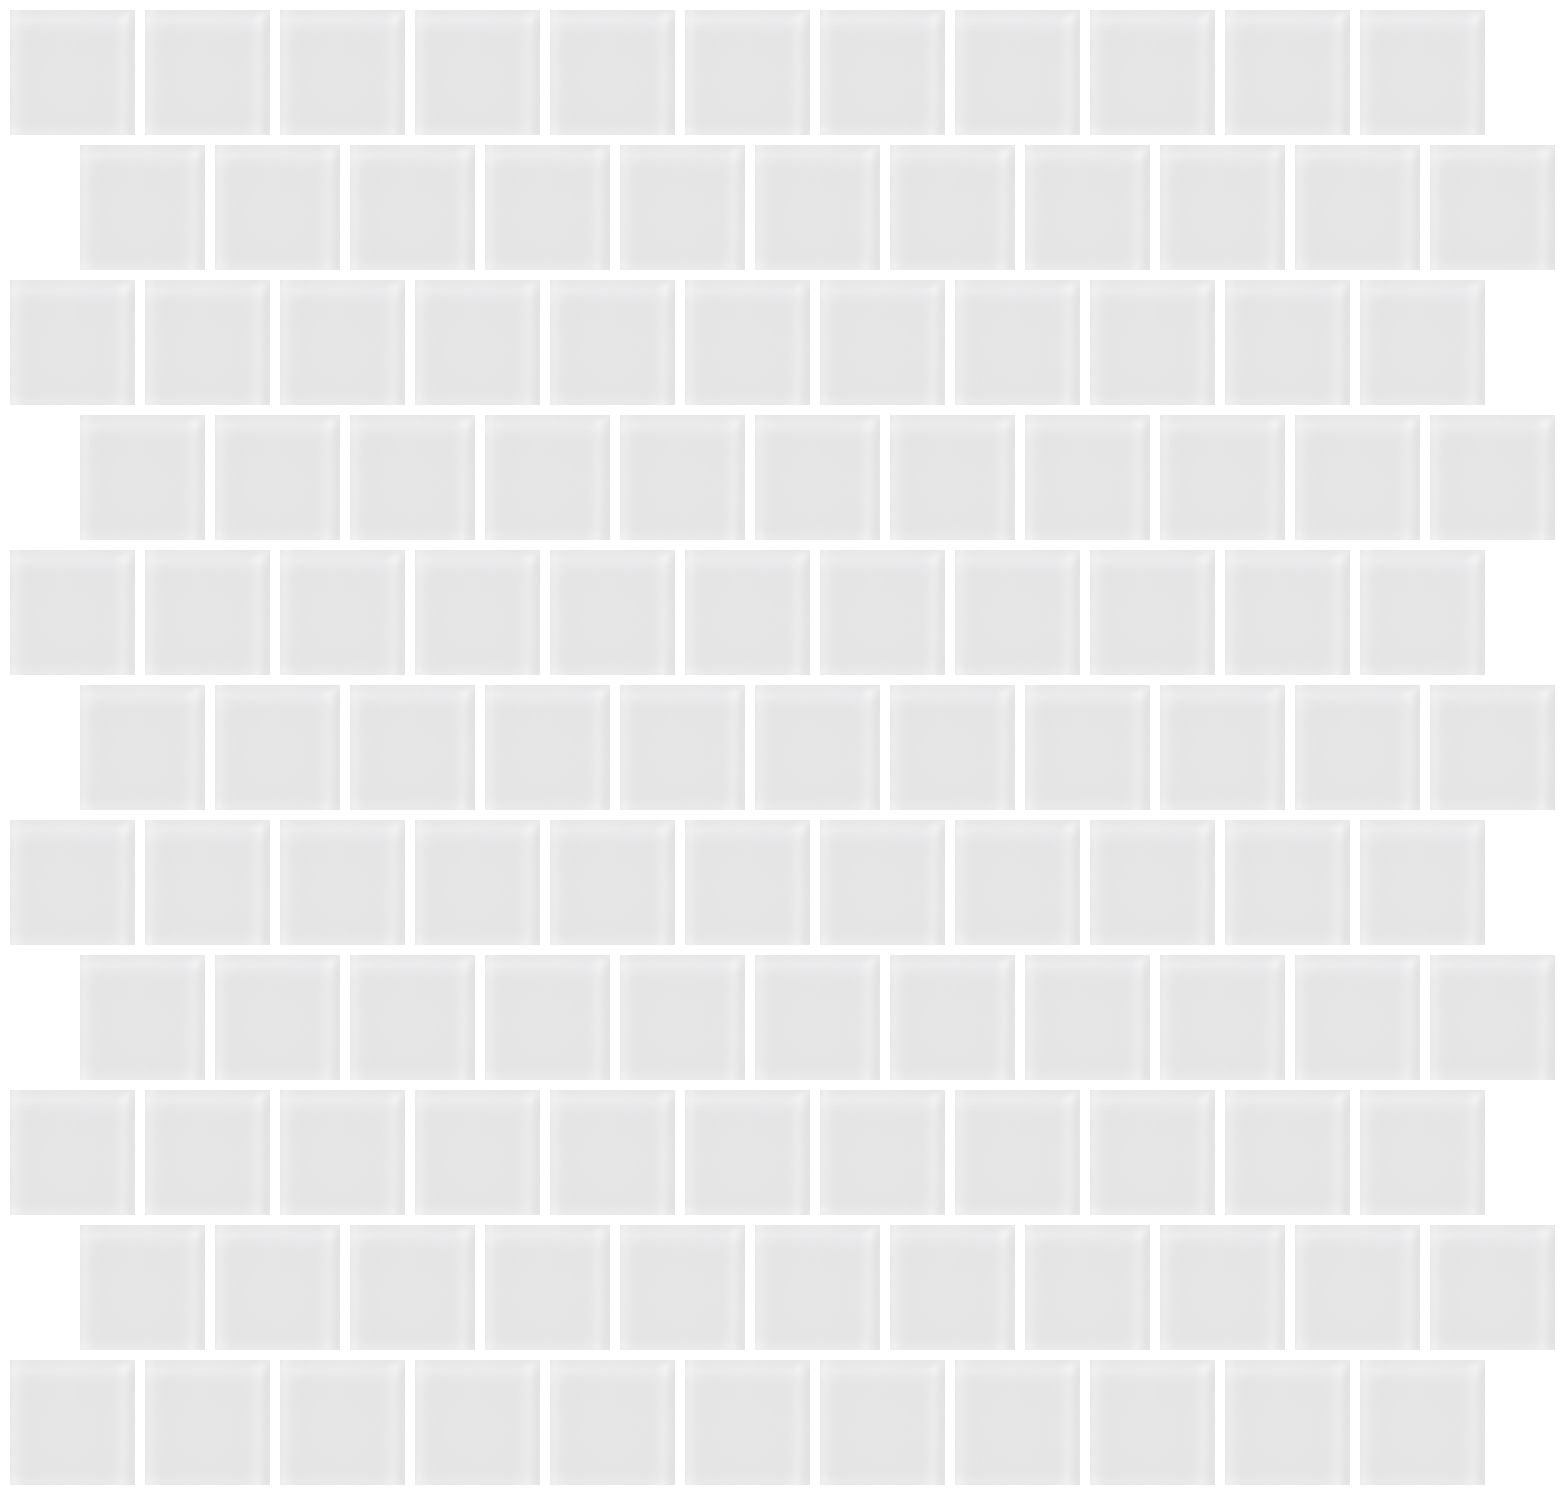 Susan Jablon Mosaics - 1 Inch Super White Frosted Glass Tile Reset In Offset Layout